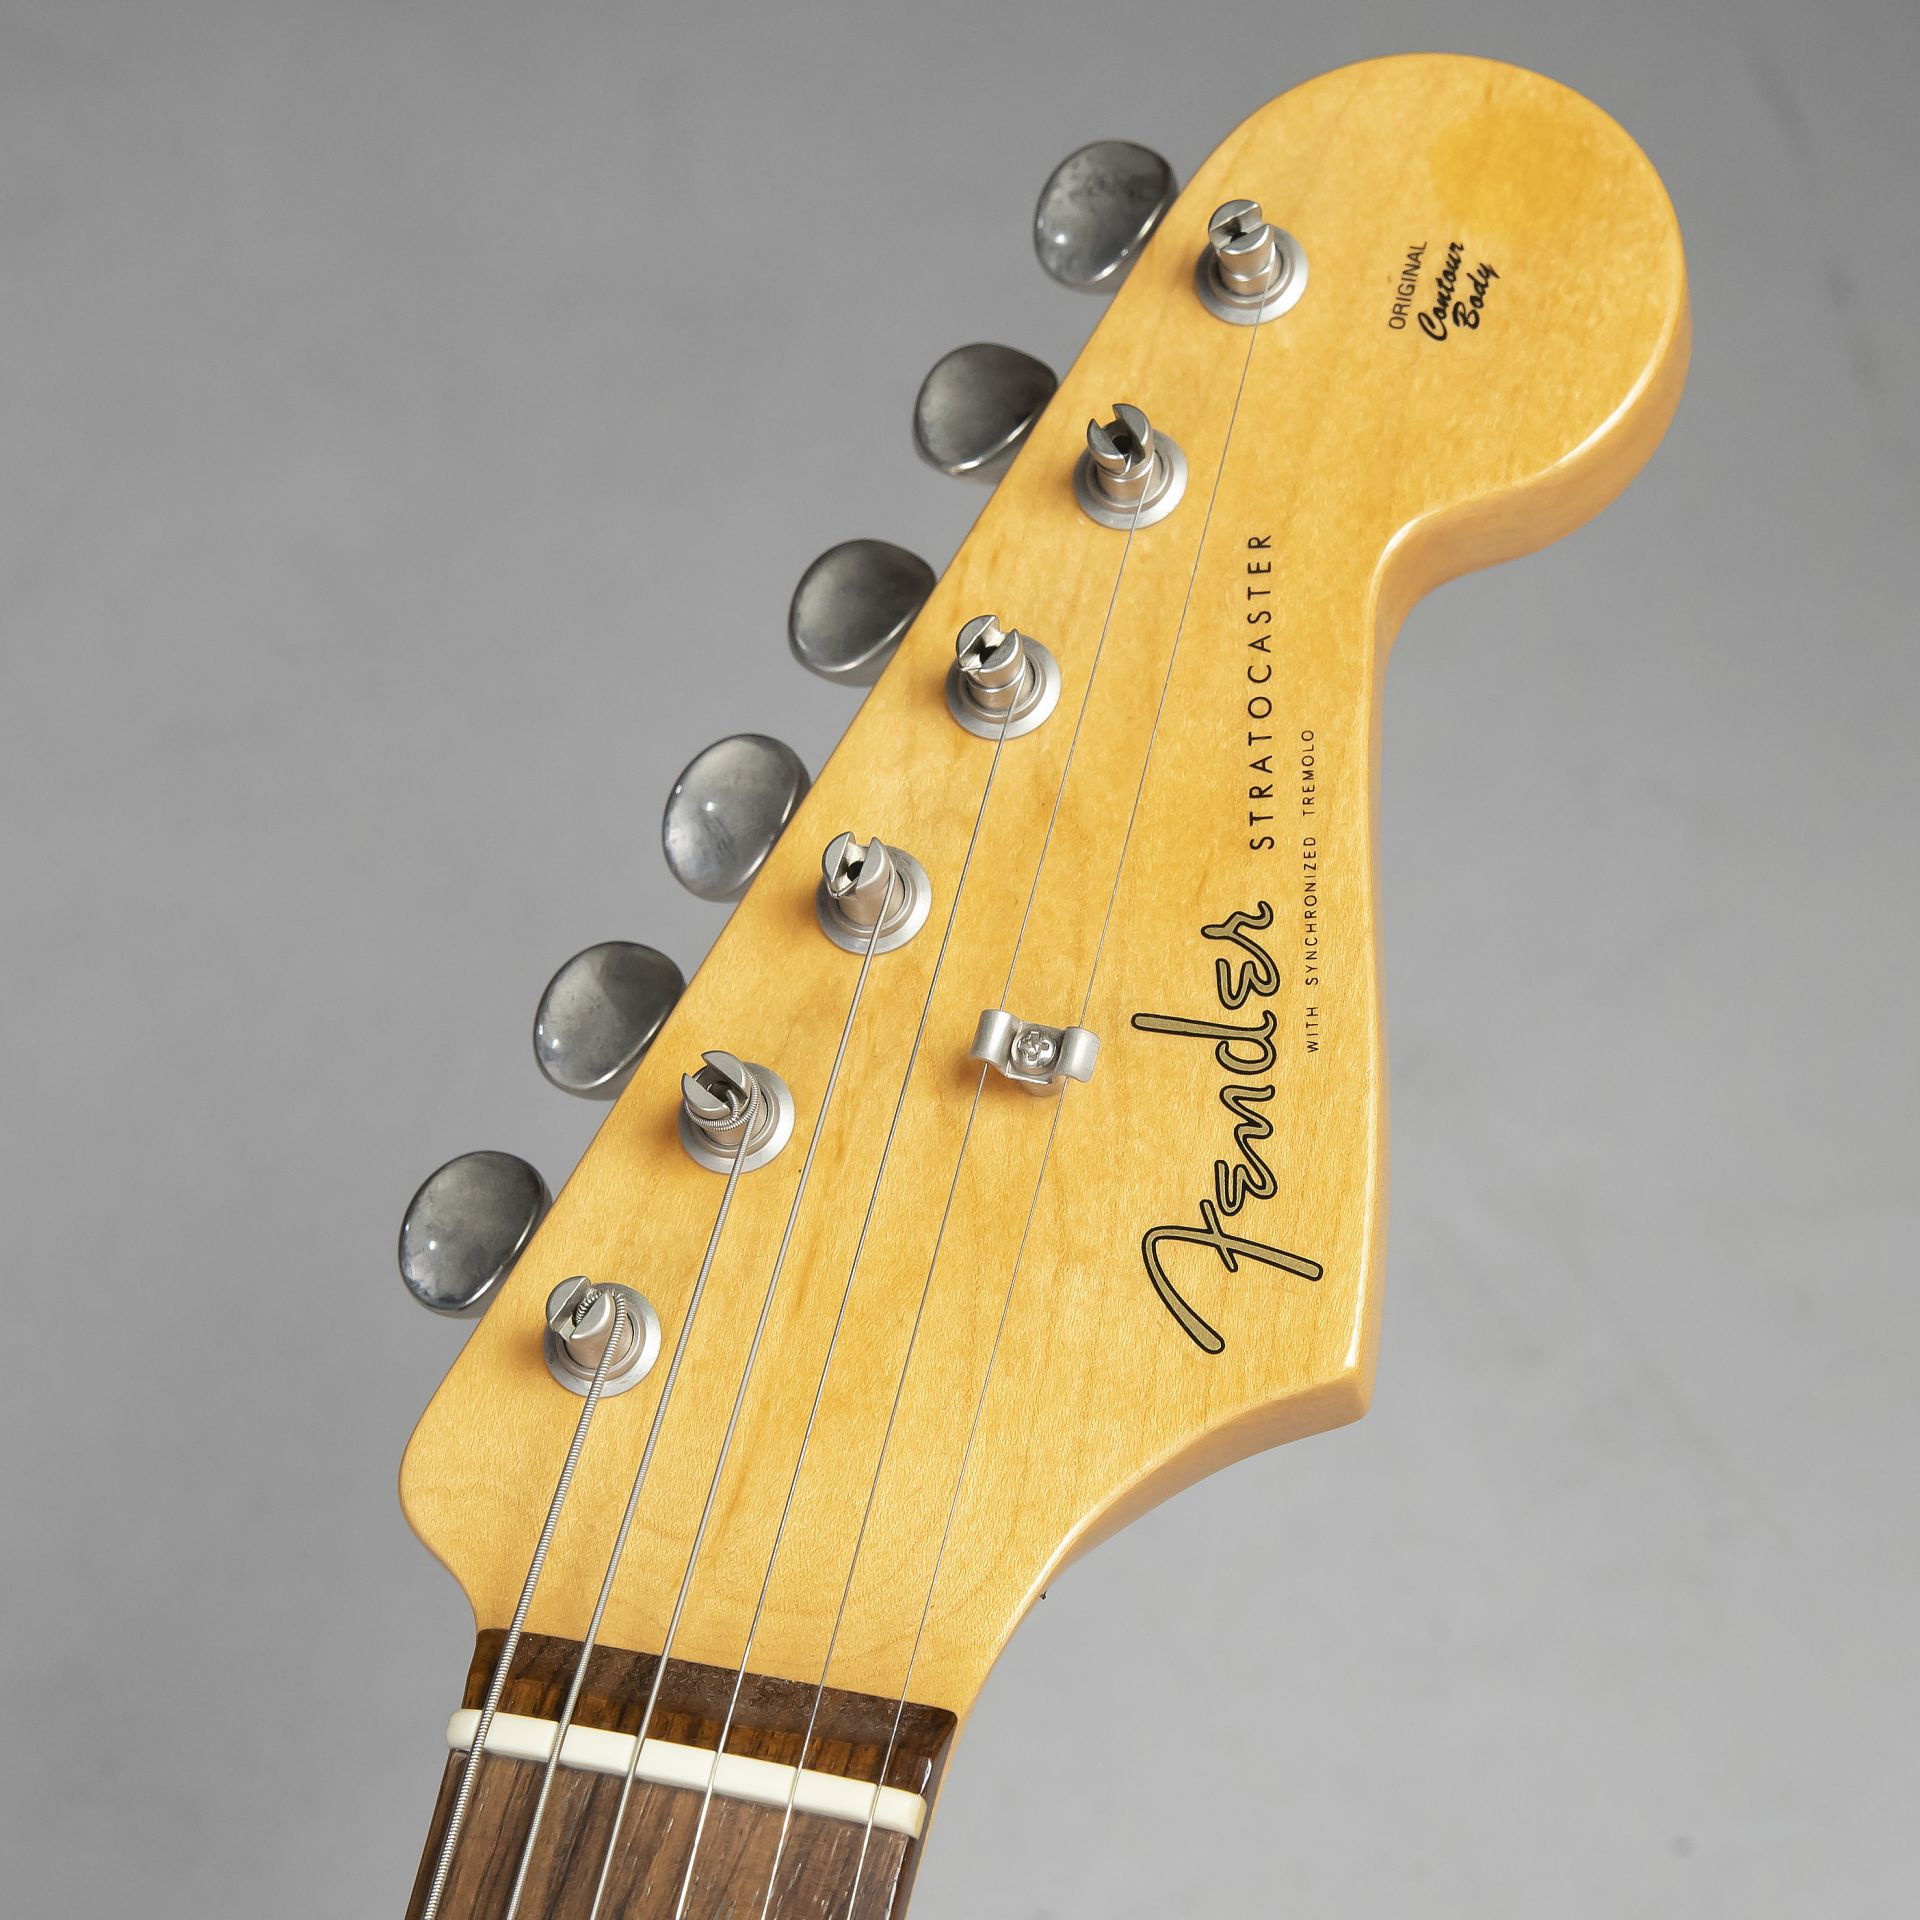 American Vintage 62 Stratocaster Thin Lacquerのヘッド画像